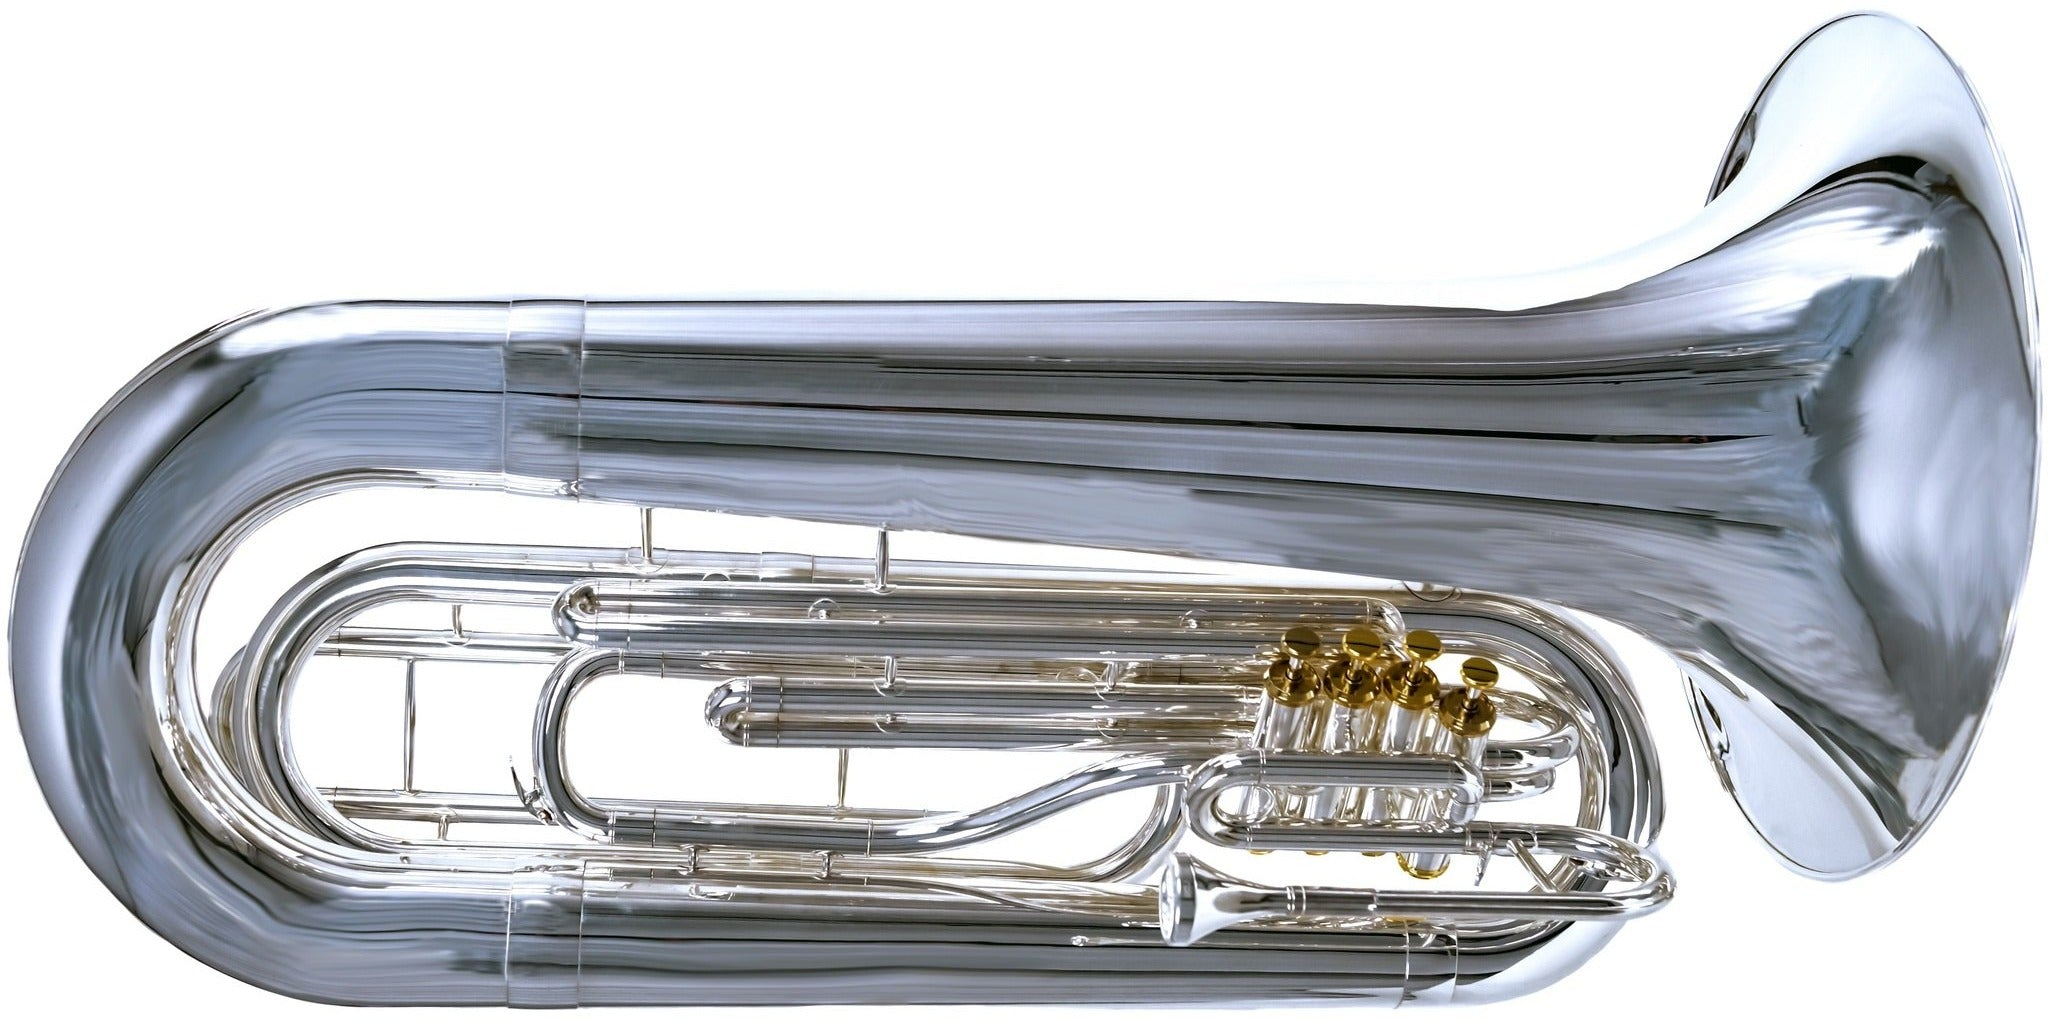 2018 System Blue Professional Marching Series Tuba (SB50, Silver)